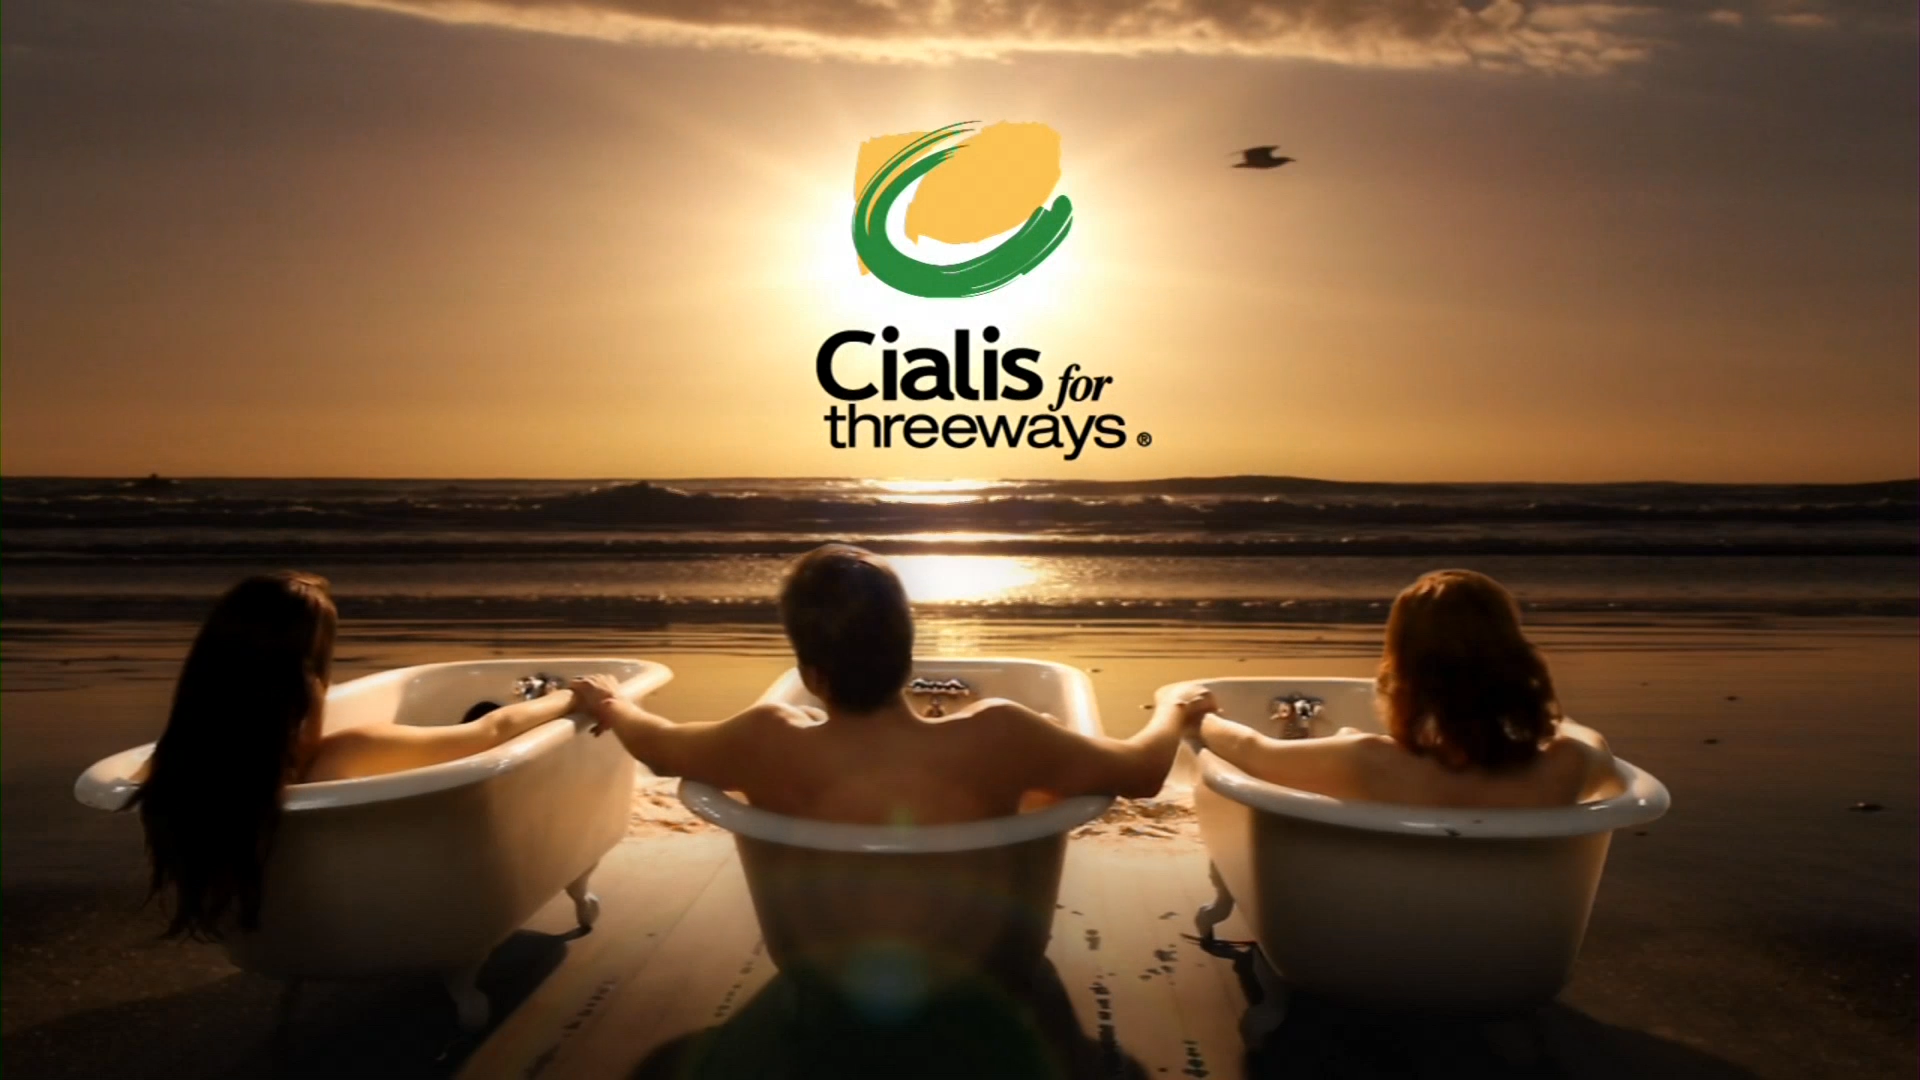 12-19-16-cialis